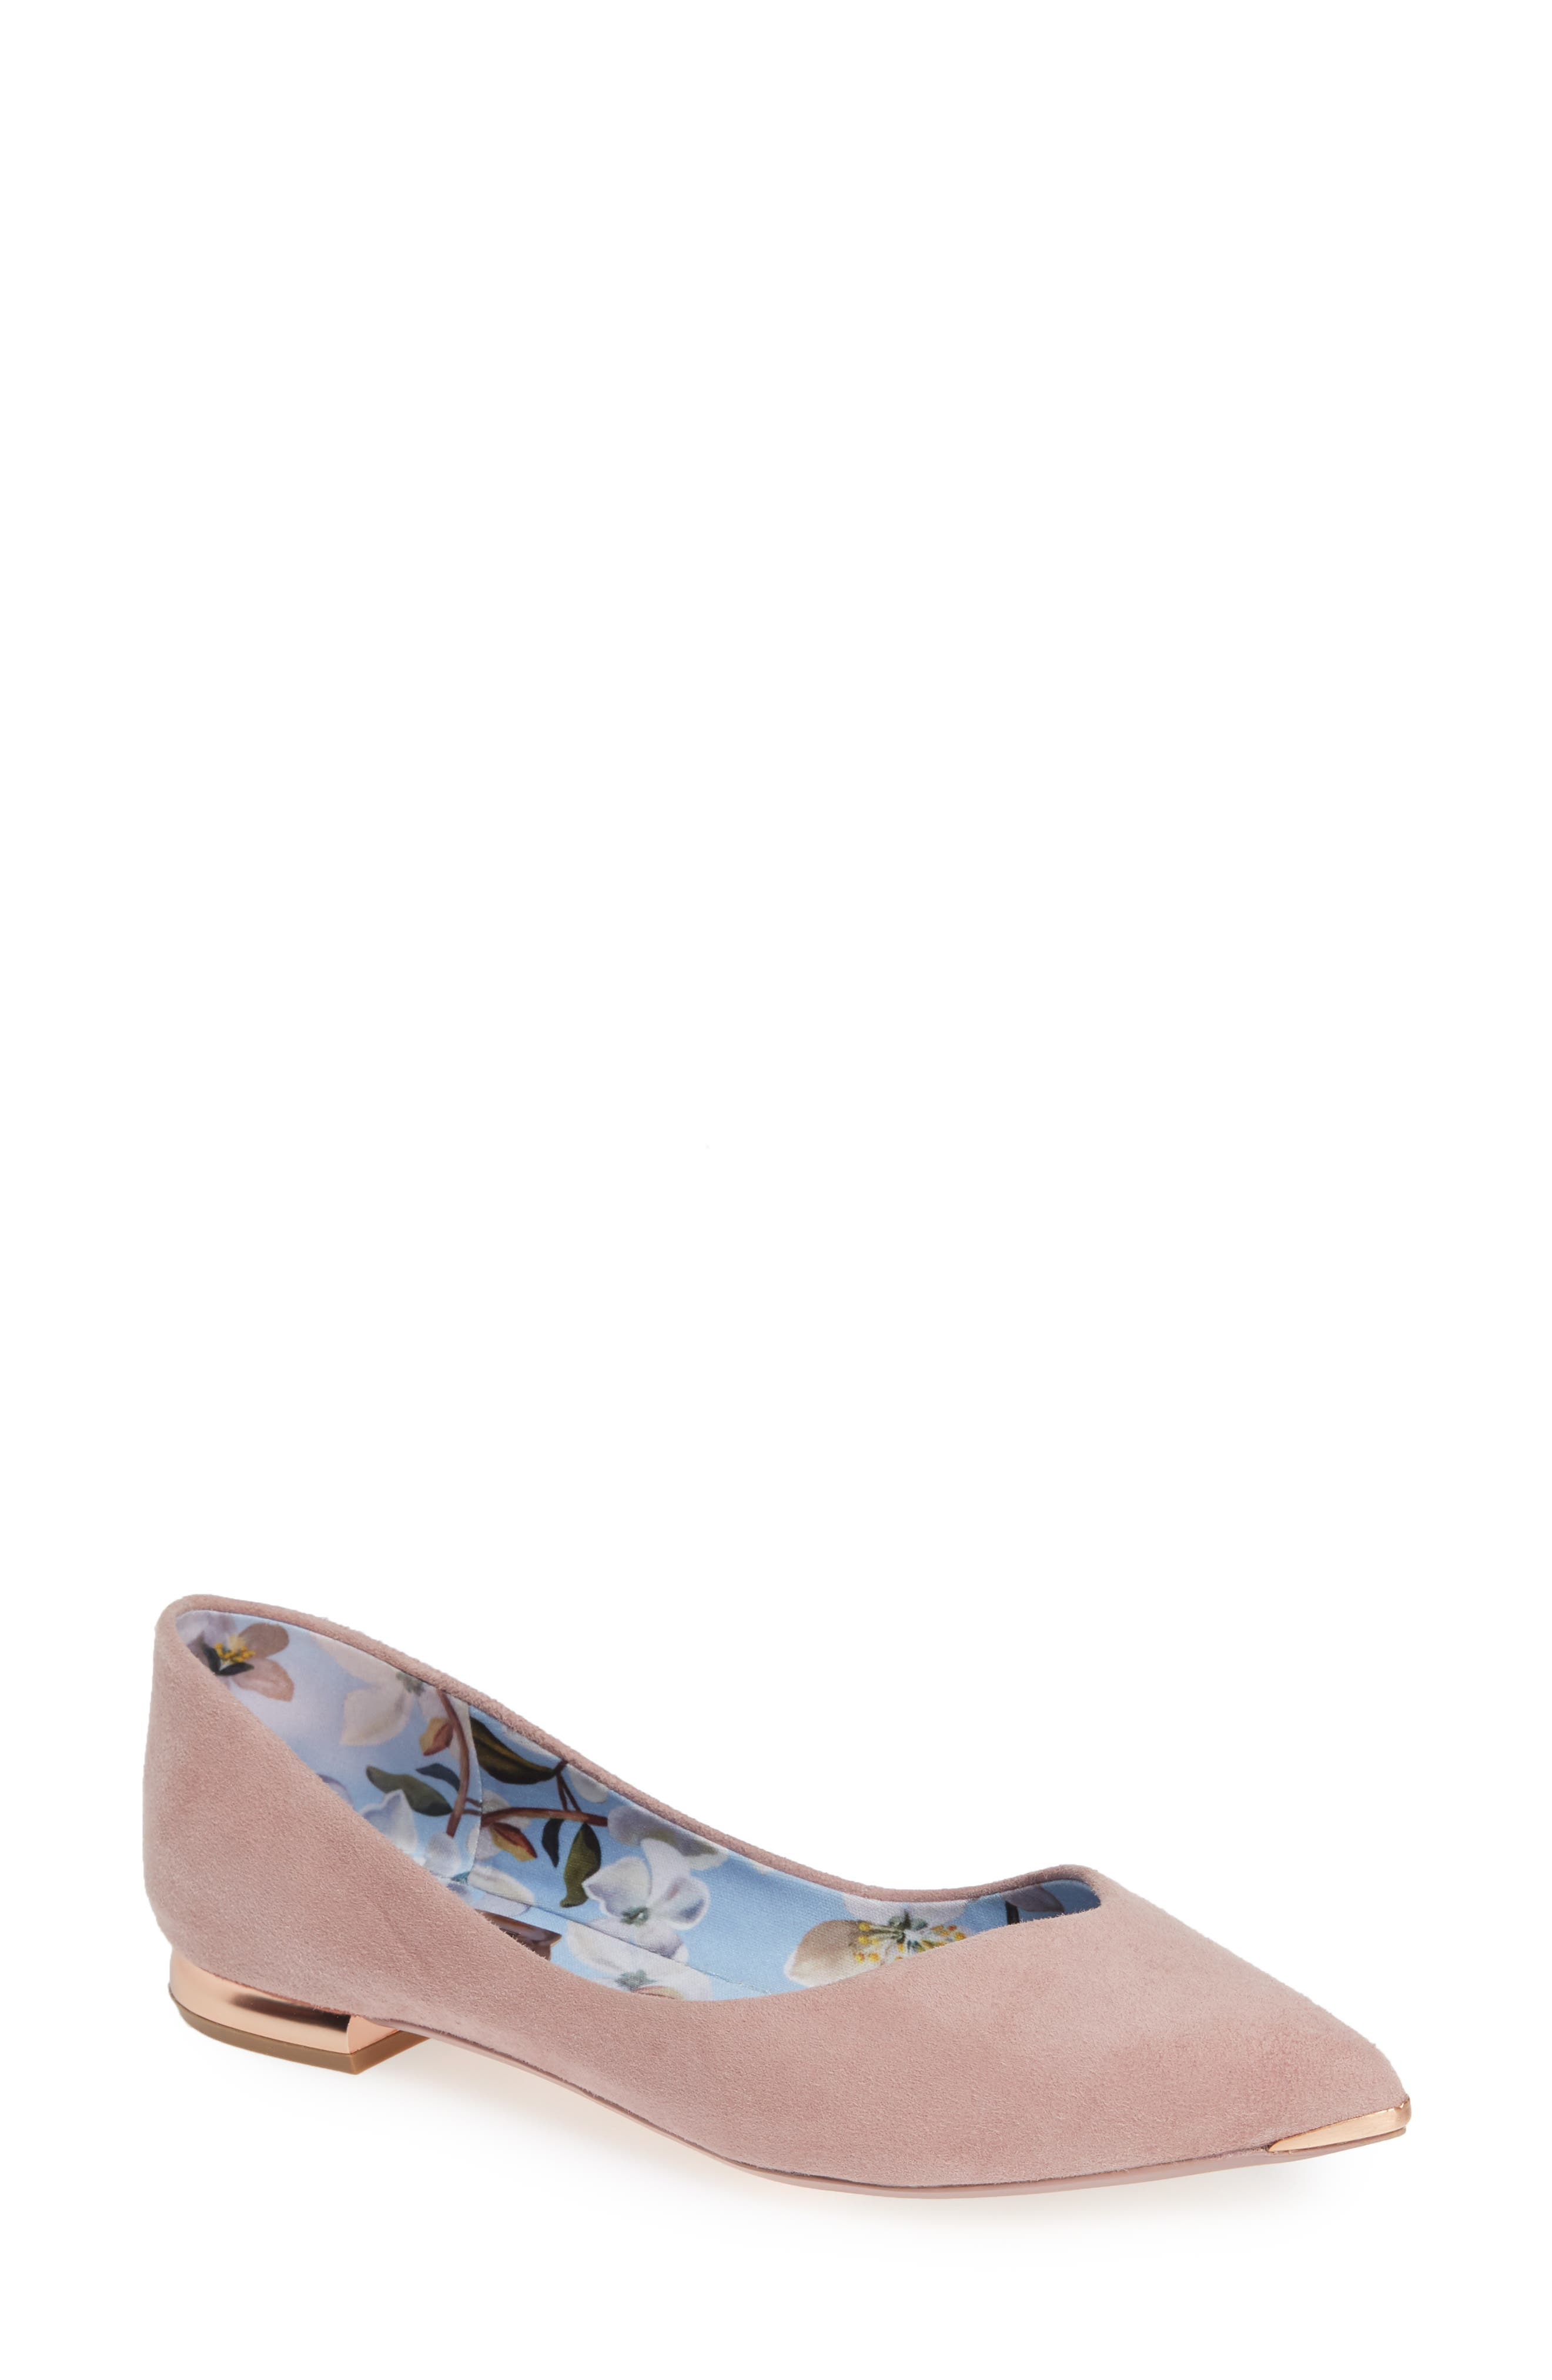 TED BAKER LONDON,                             Mancies Pointy Toe Flat,                             Main thumbnail 1, color,                             WINTER ROSE SUEDE